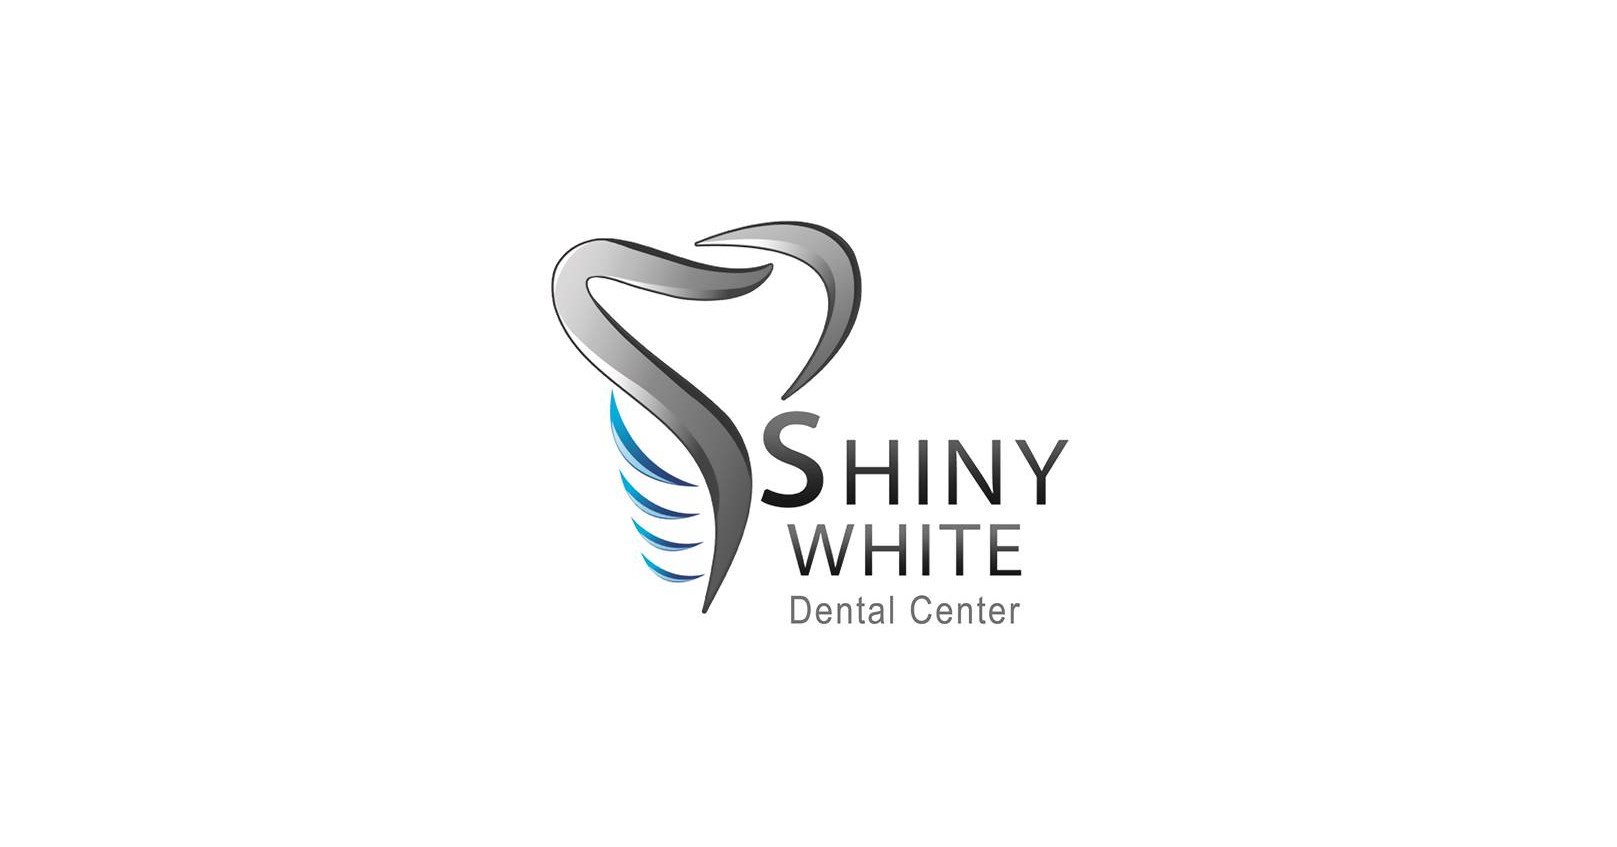 Job: Personal Assistant to CEO at Shiny white dental center in Cairo, Egypt